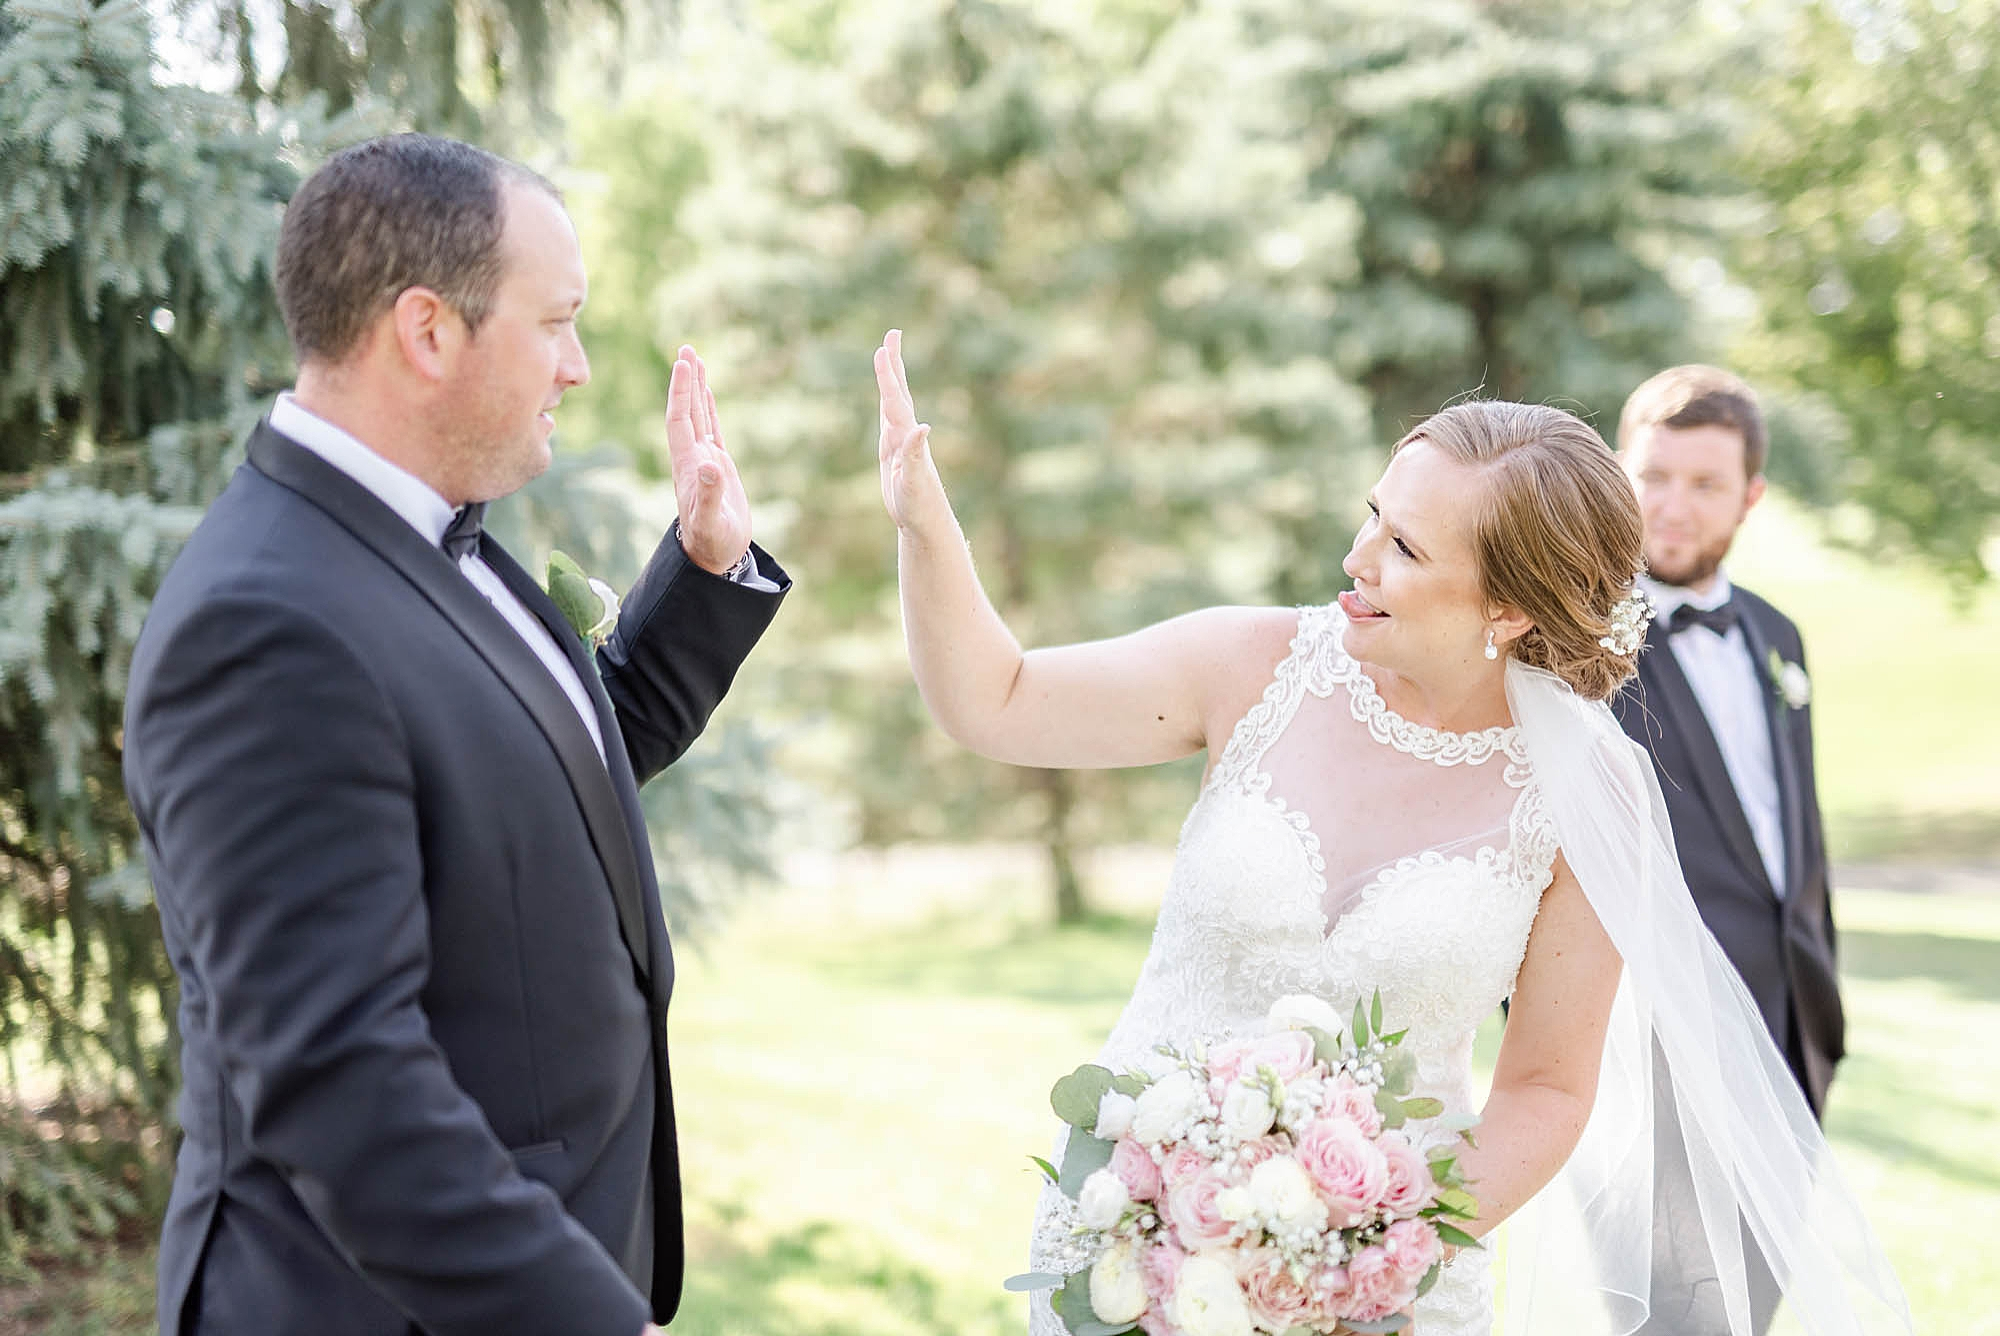 bride and groom high five after wedding ceremony